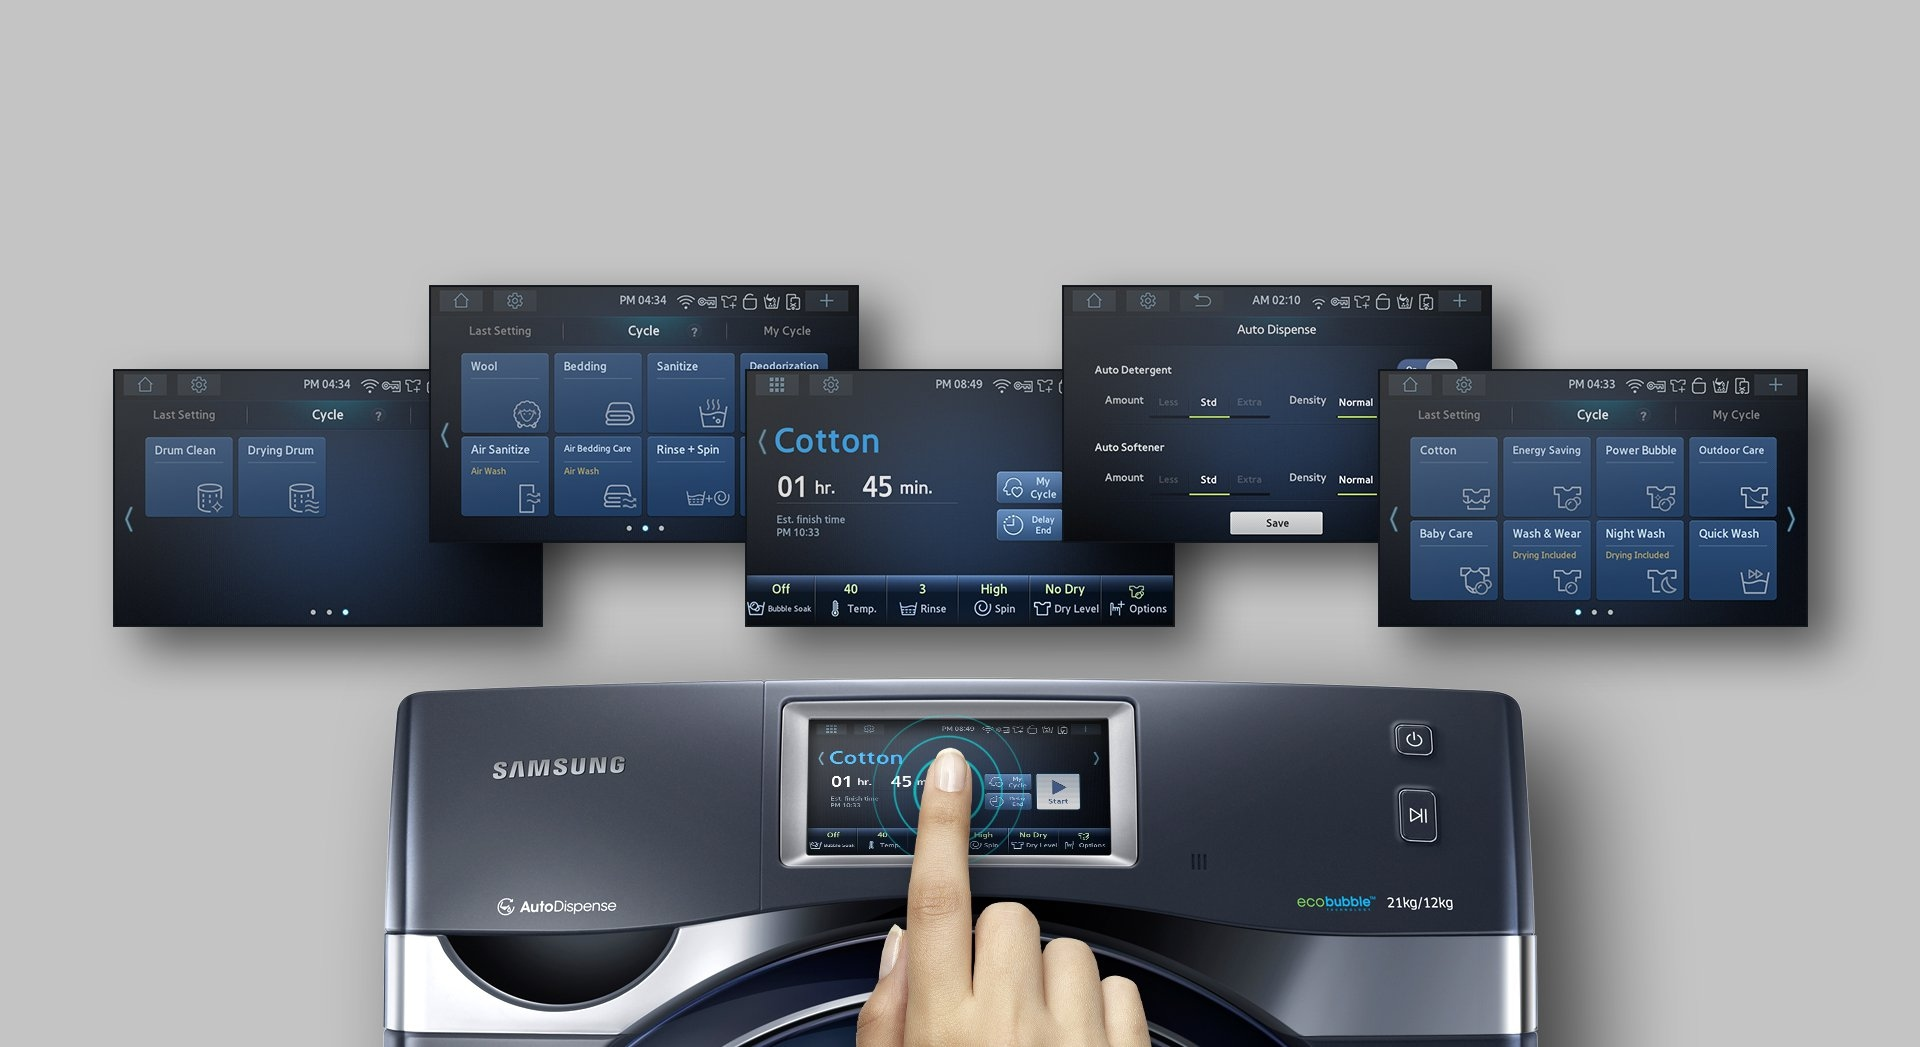 An image showing a user's hand operating the WD9500K Add Wash's touch screen, as well as five screenshots showing some of the commands users can operate using the device.